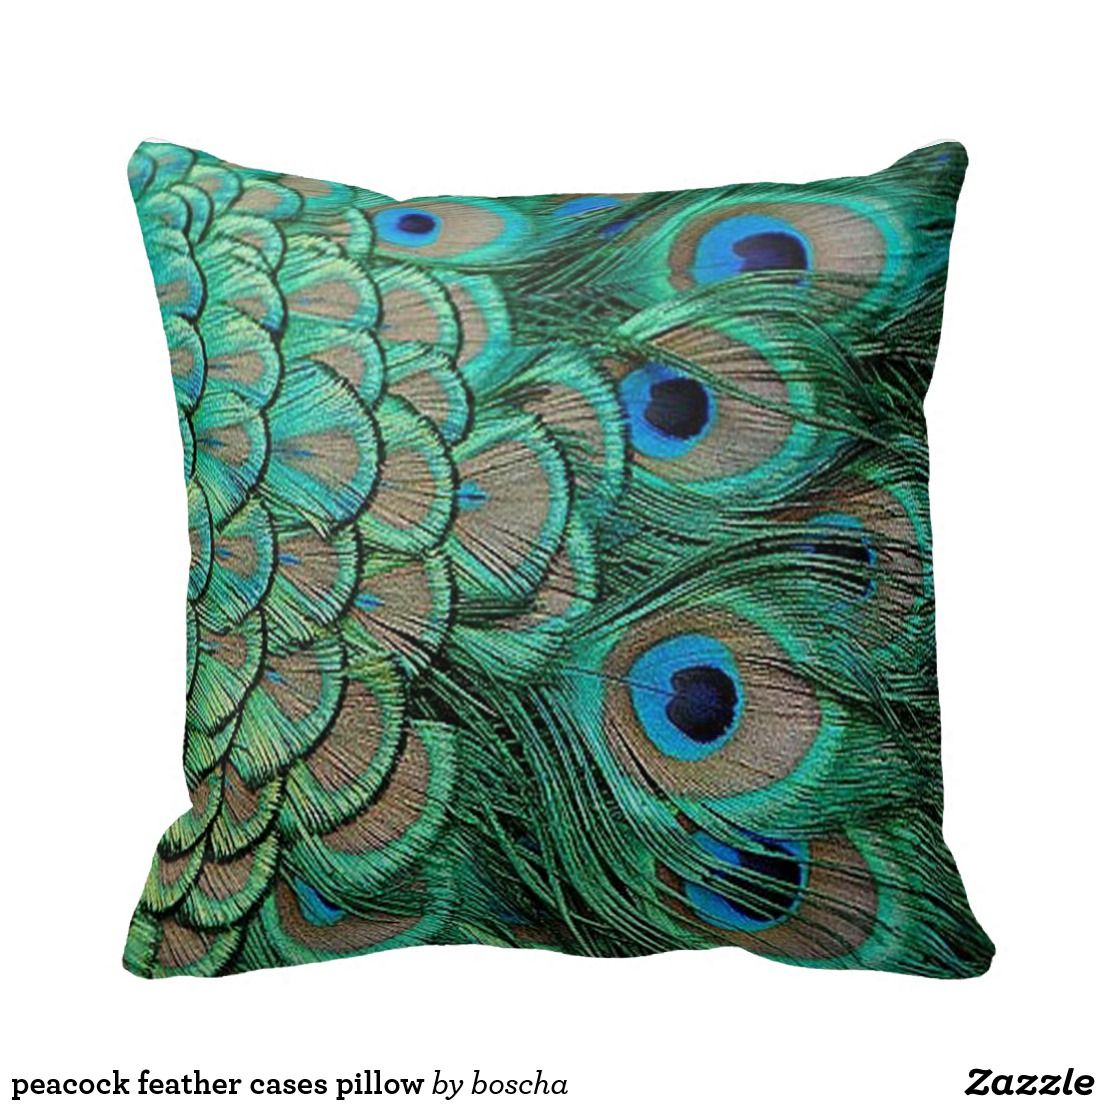 Peacock Feather Cases Pillow Zazzle Com In 2019 Throw Pillows